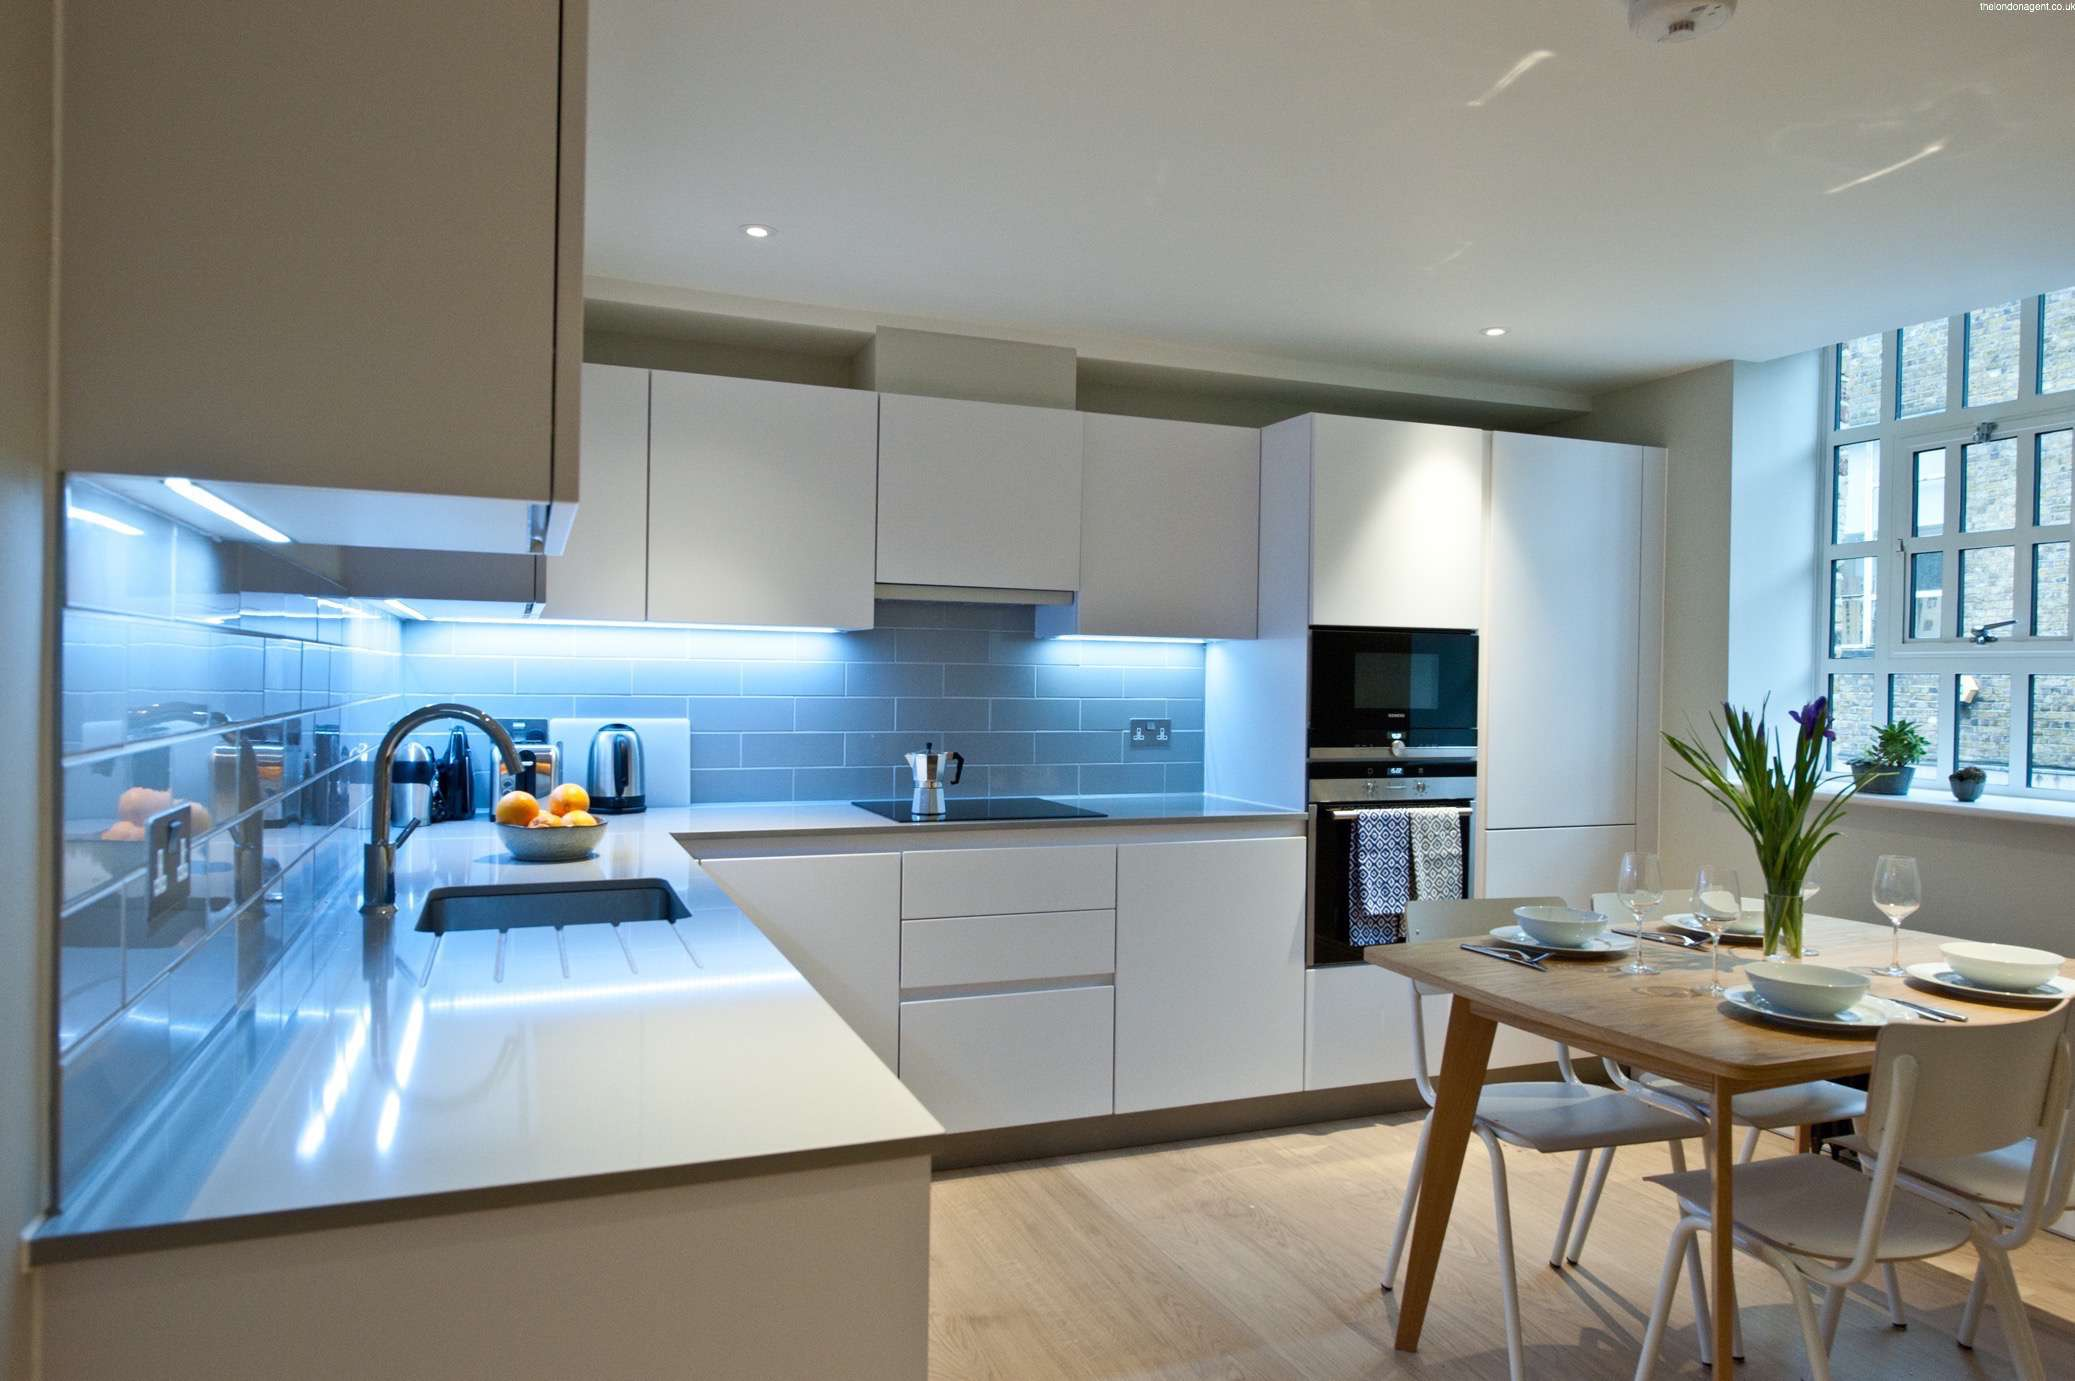 Short let London apartment rental services